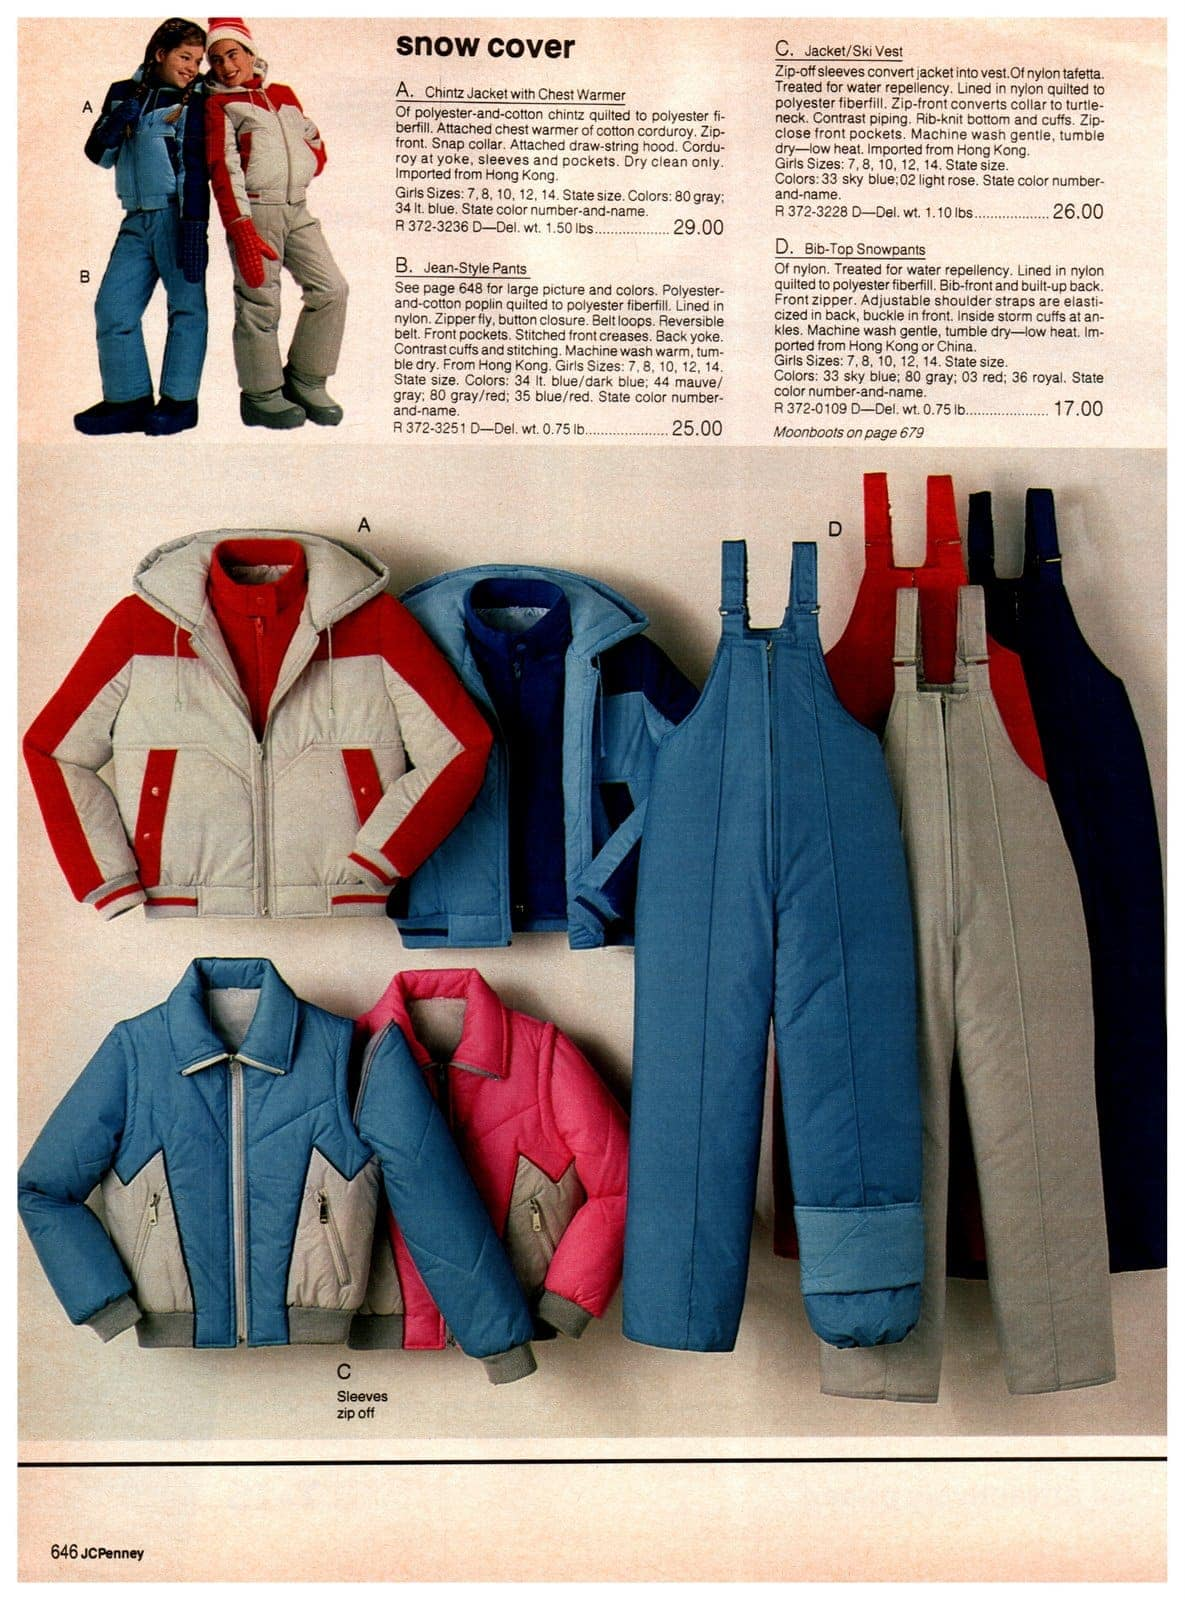 Chintz jacket with chest warmer, jean-style pants, jacket and ski vests and bib-top snowpants